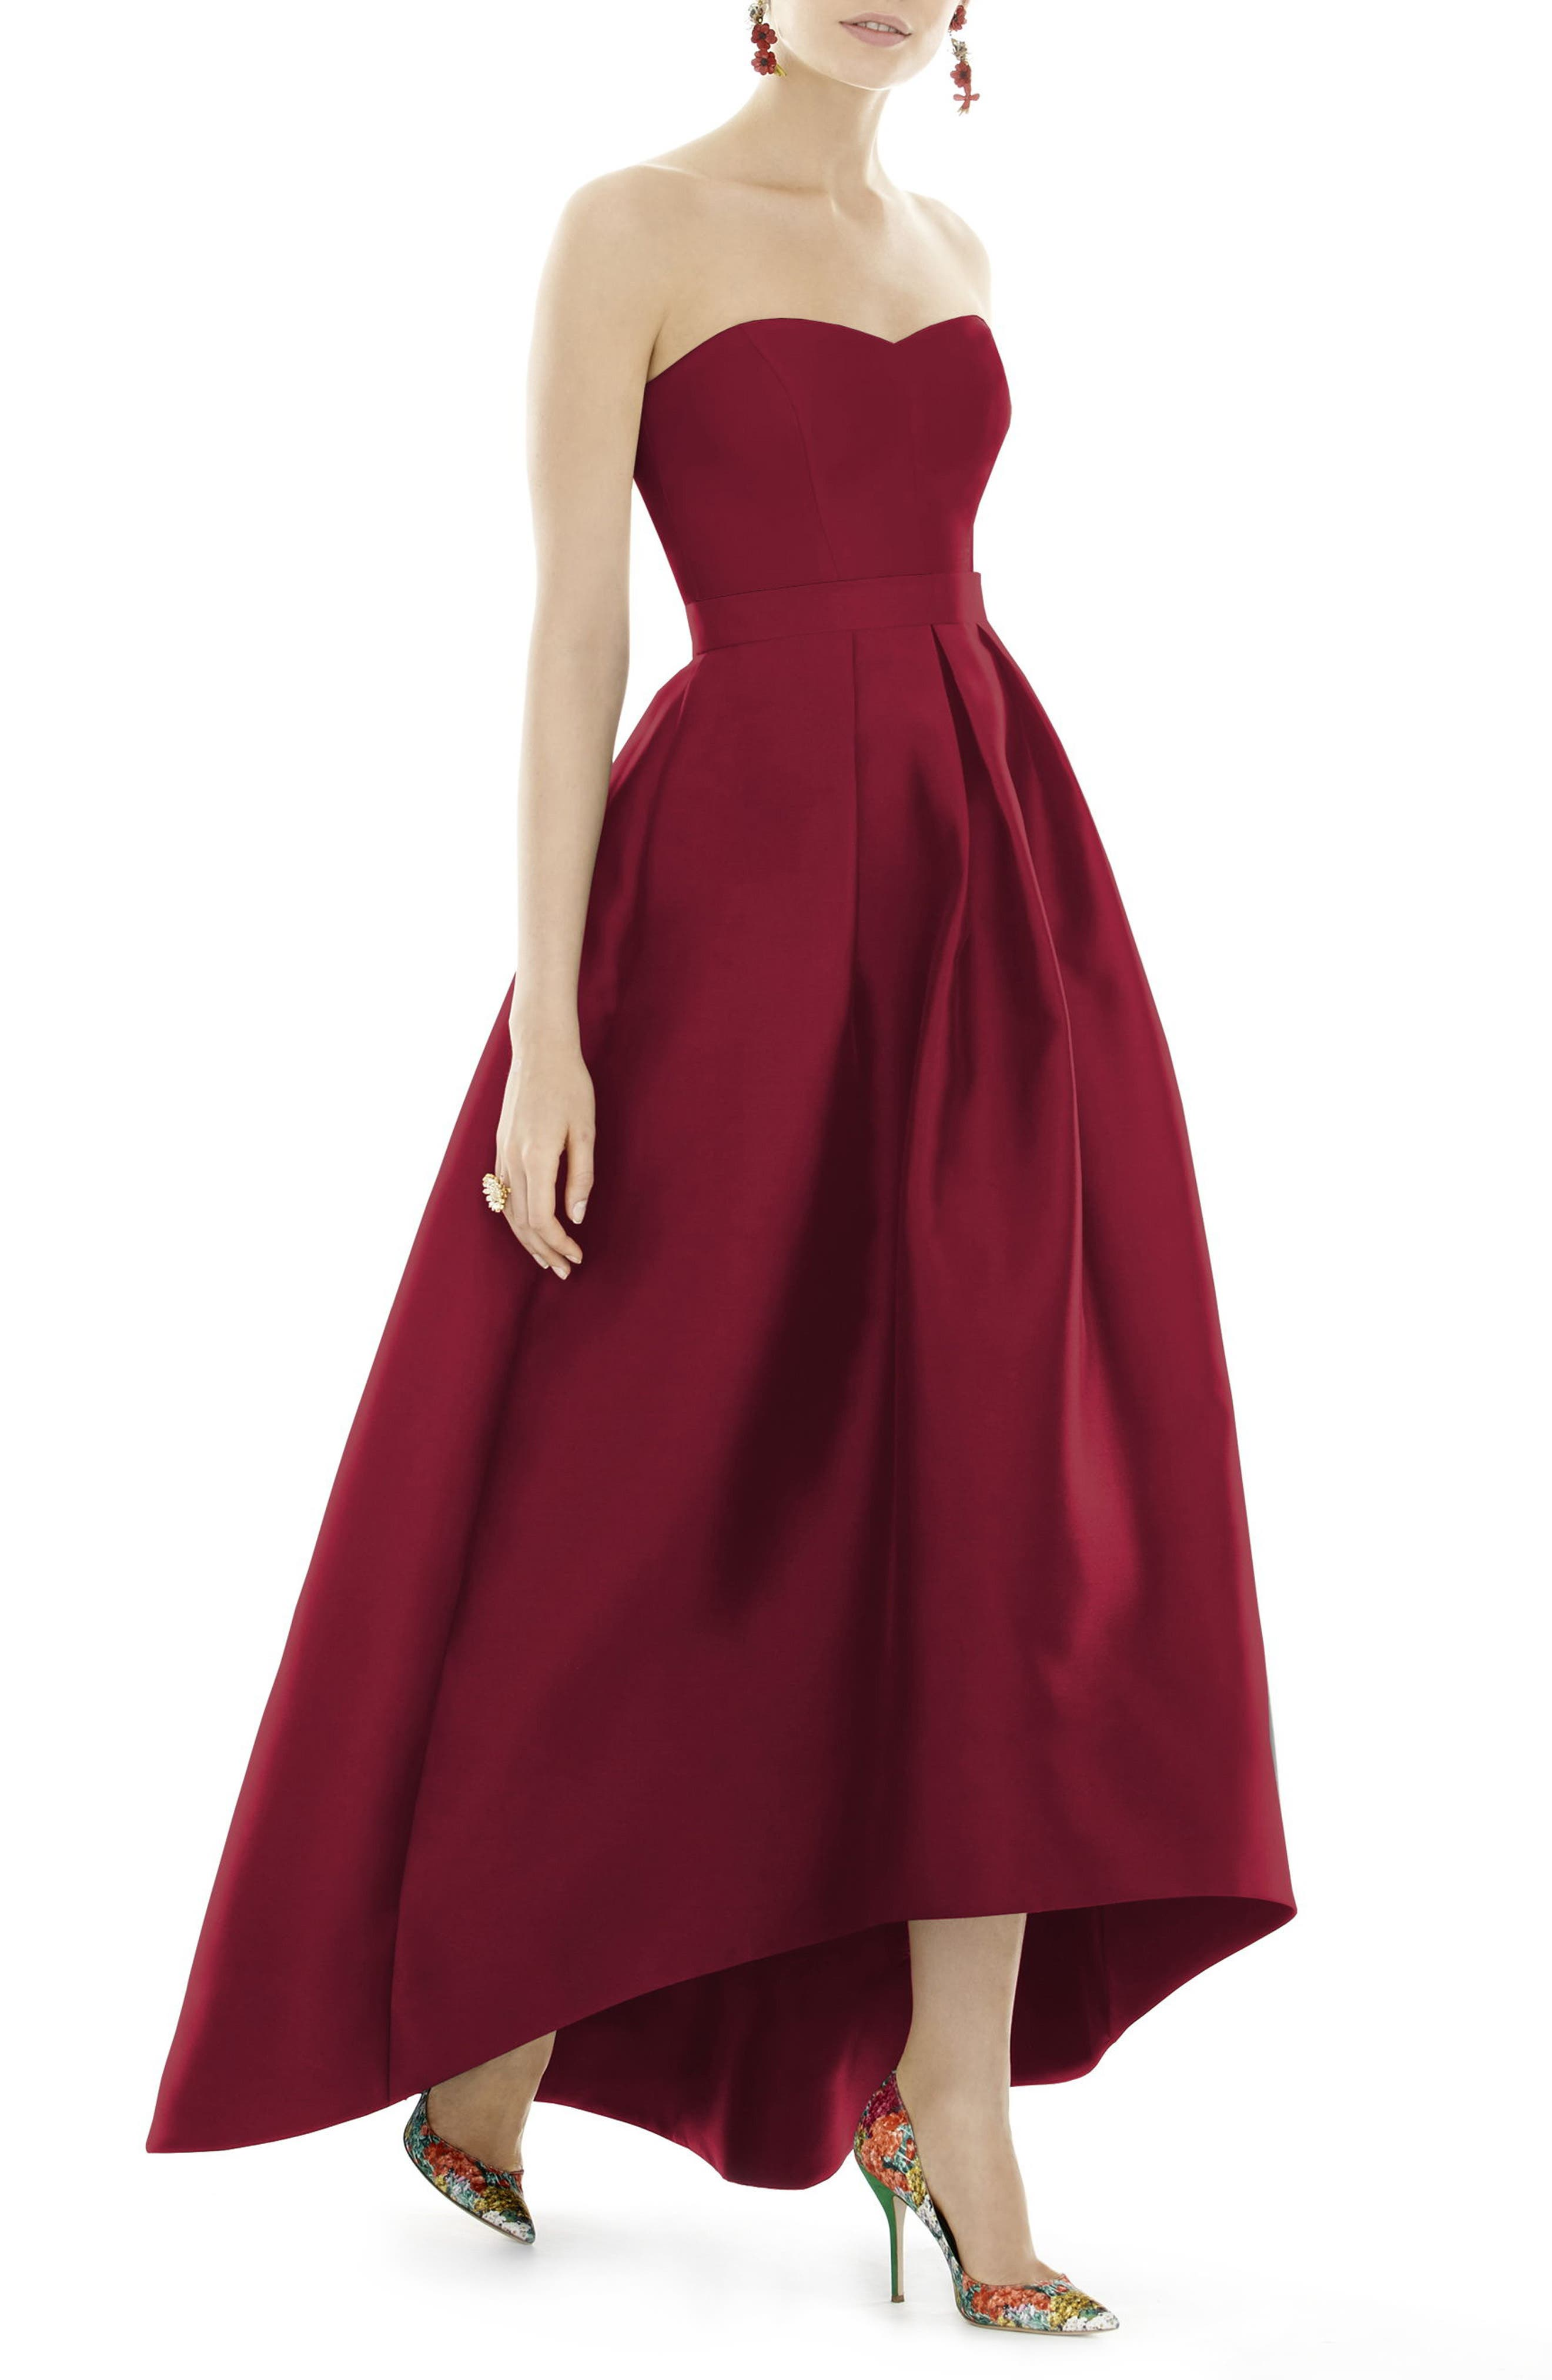 1950s Plus Size Dresses, Swing Dresses Womens Alfred Sung Strapless Highlow Satin Twill Ballgown Size 12 - Red $242.00 AT vintagedancer.com